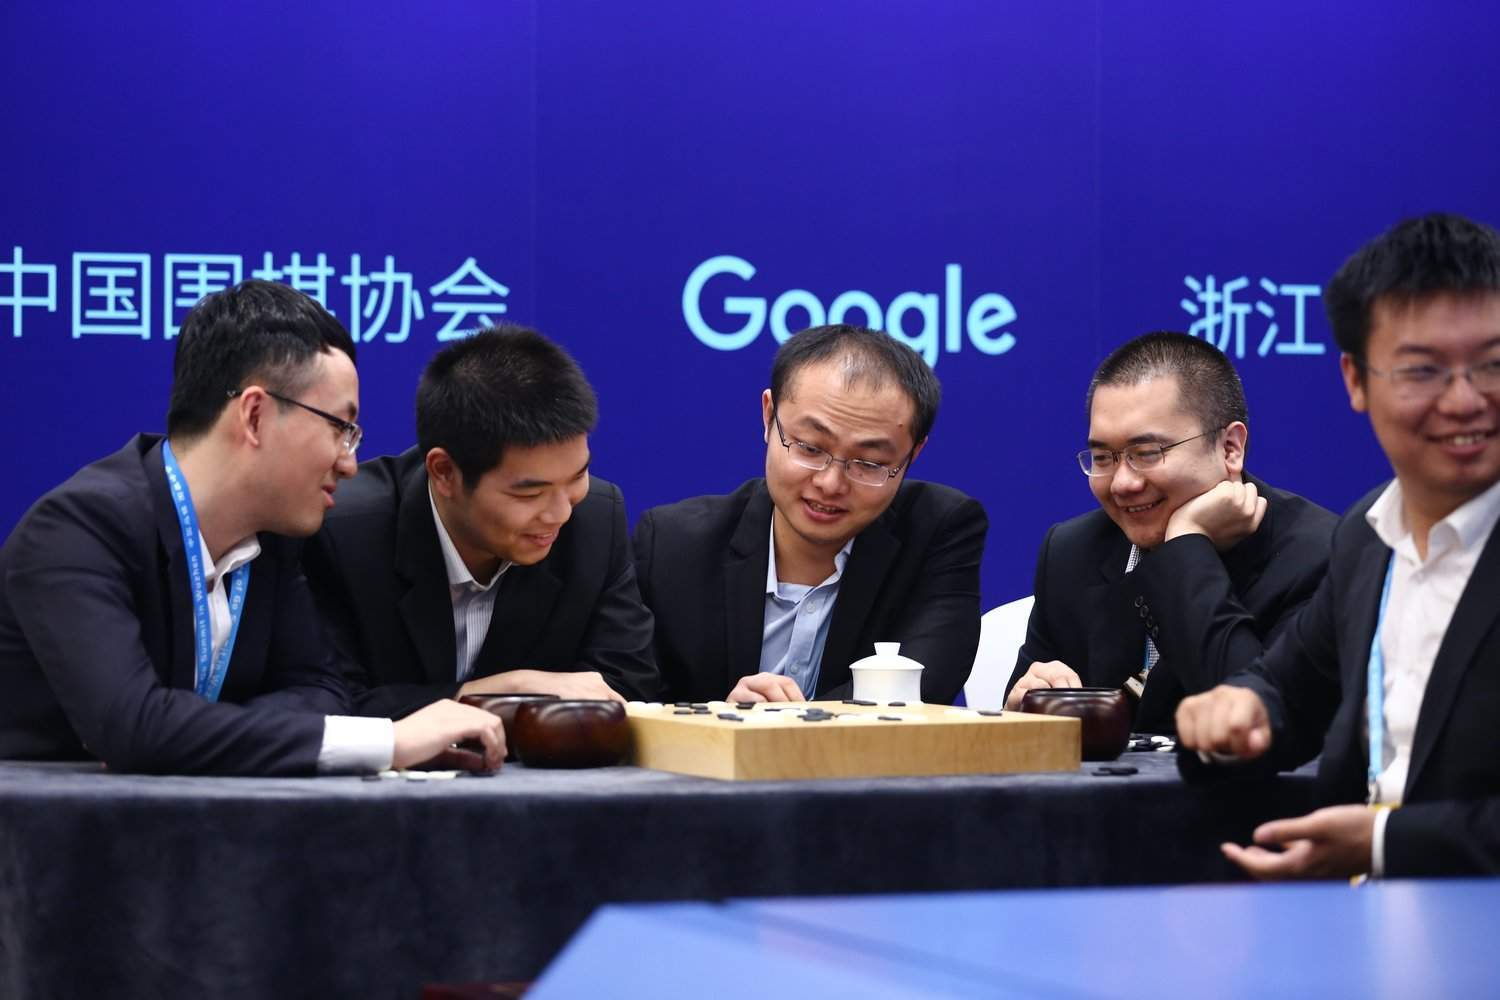 Google's AI gets ready to triumph in final Go battle